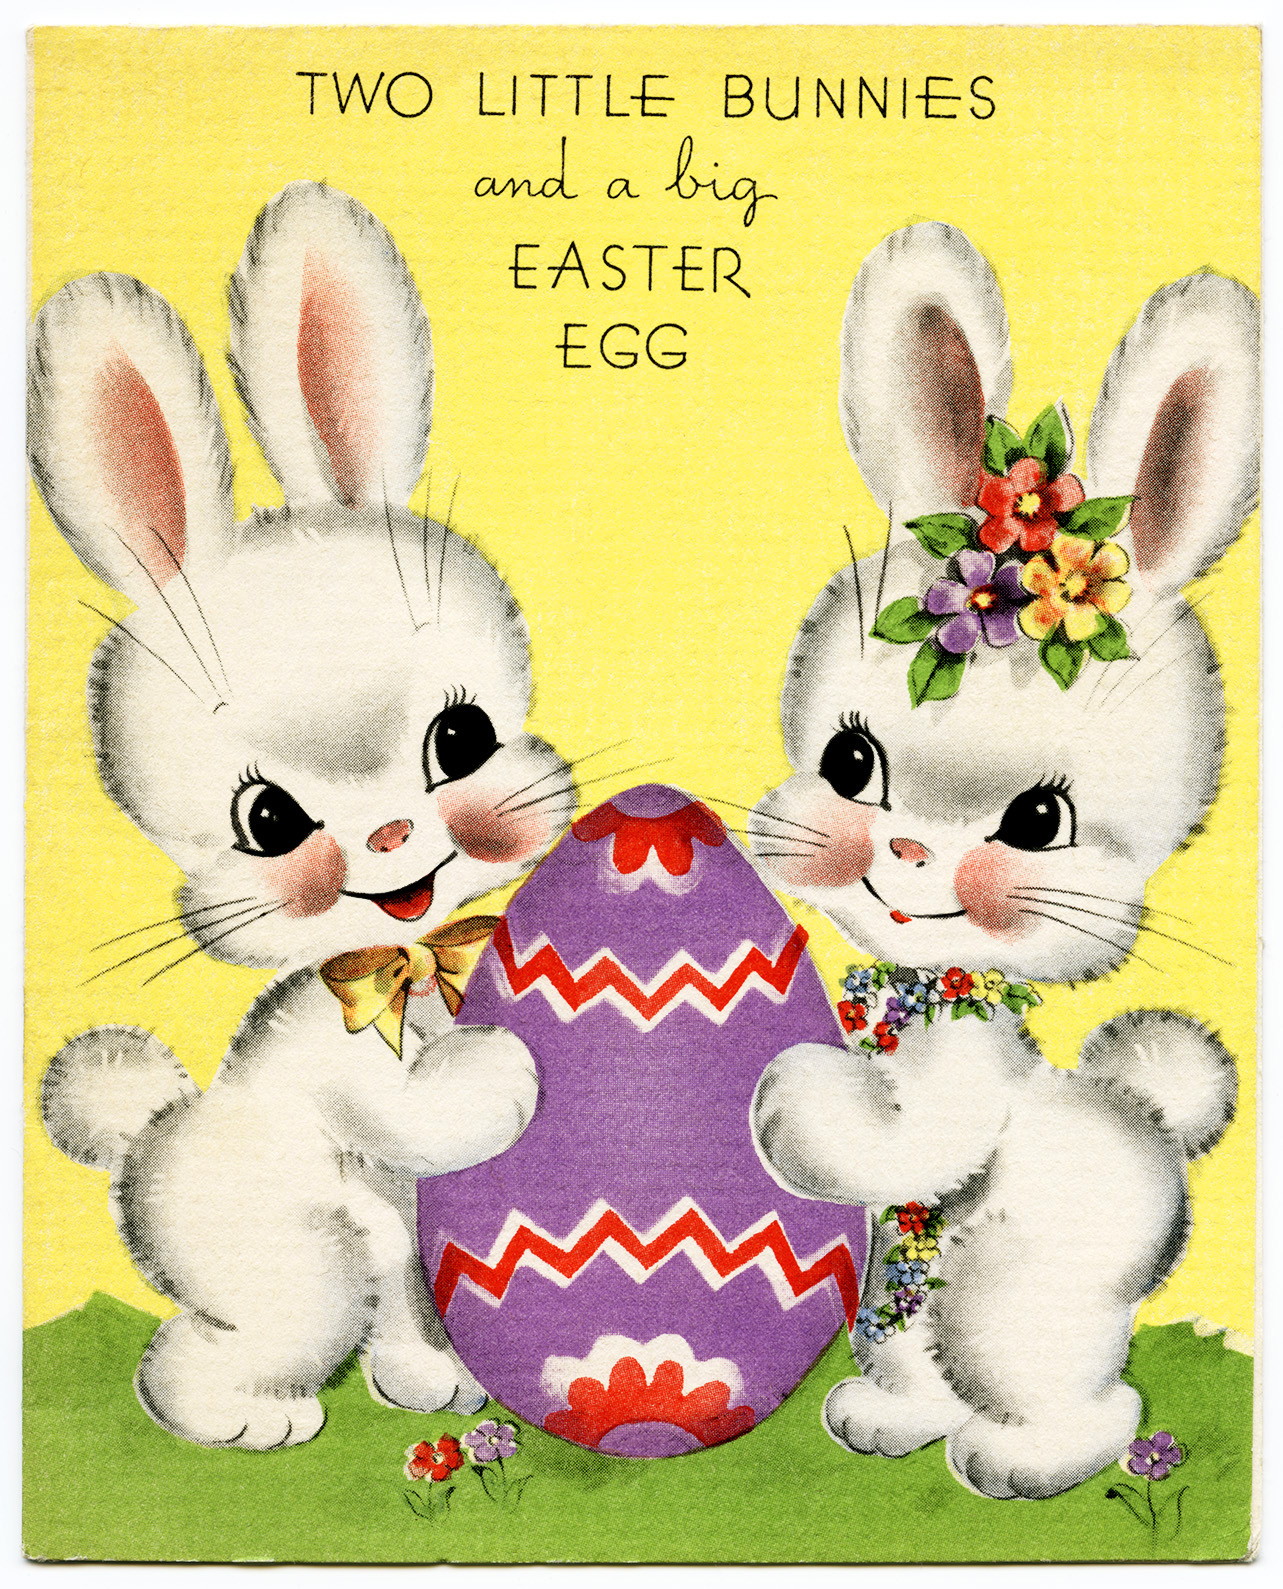 Free Vintage Image Bunnies Easter Card Old Design Shop Blog